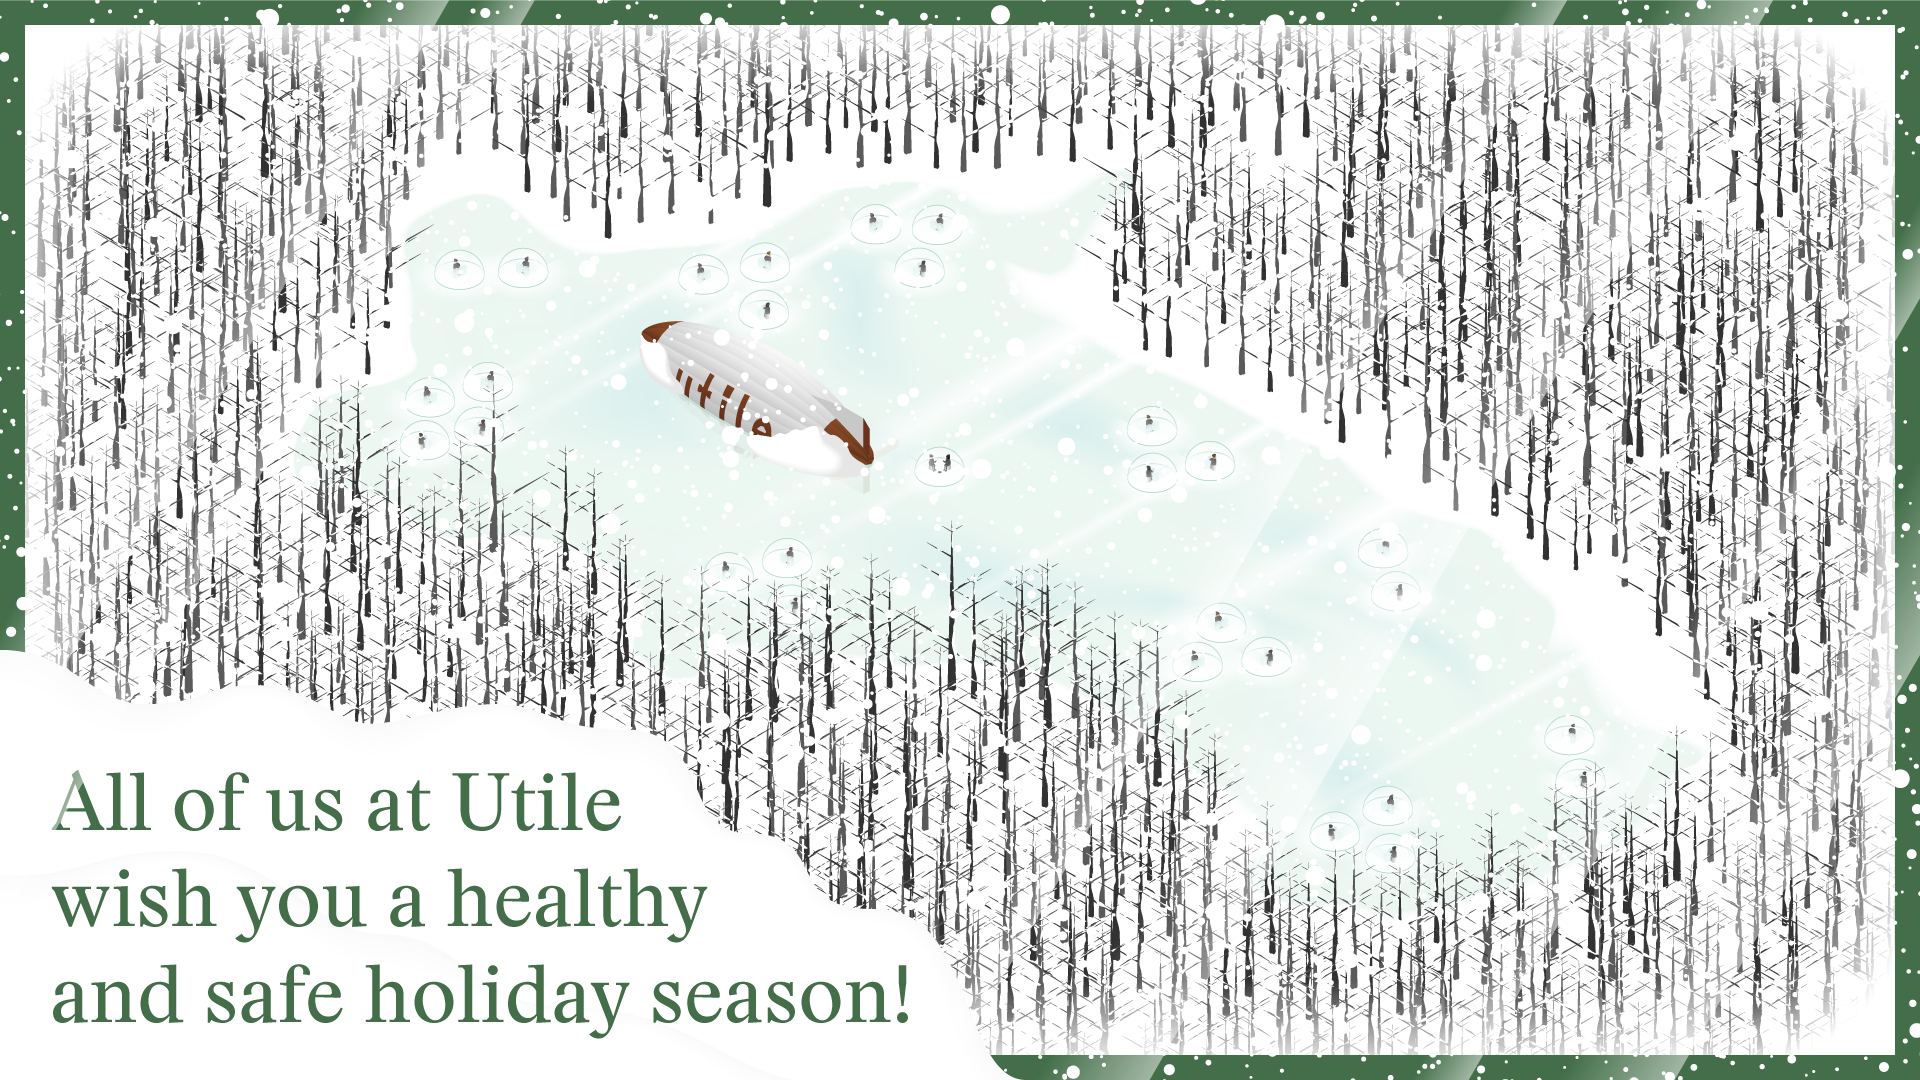 Happy Holidays from Utile!